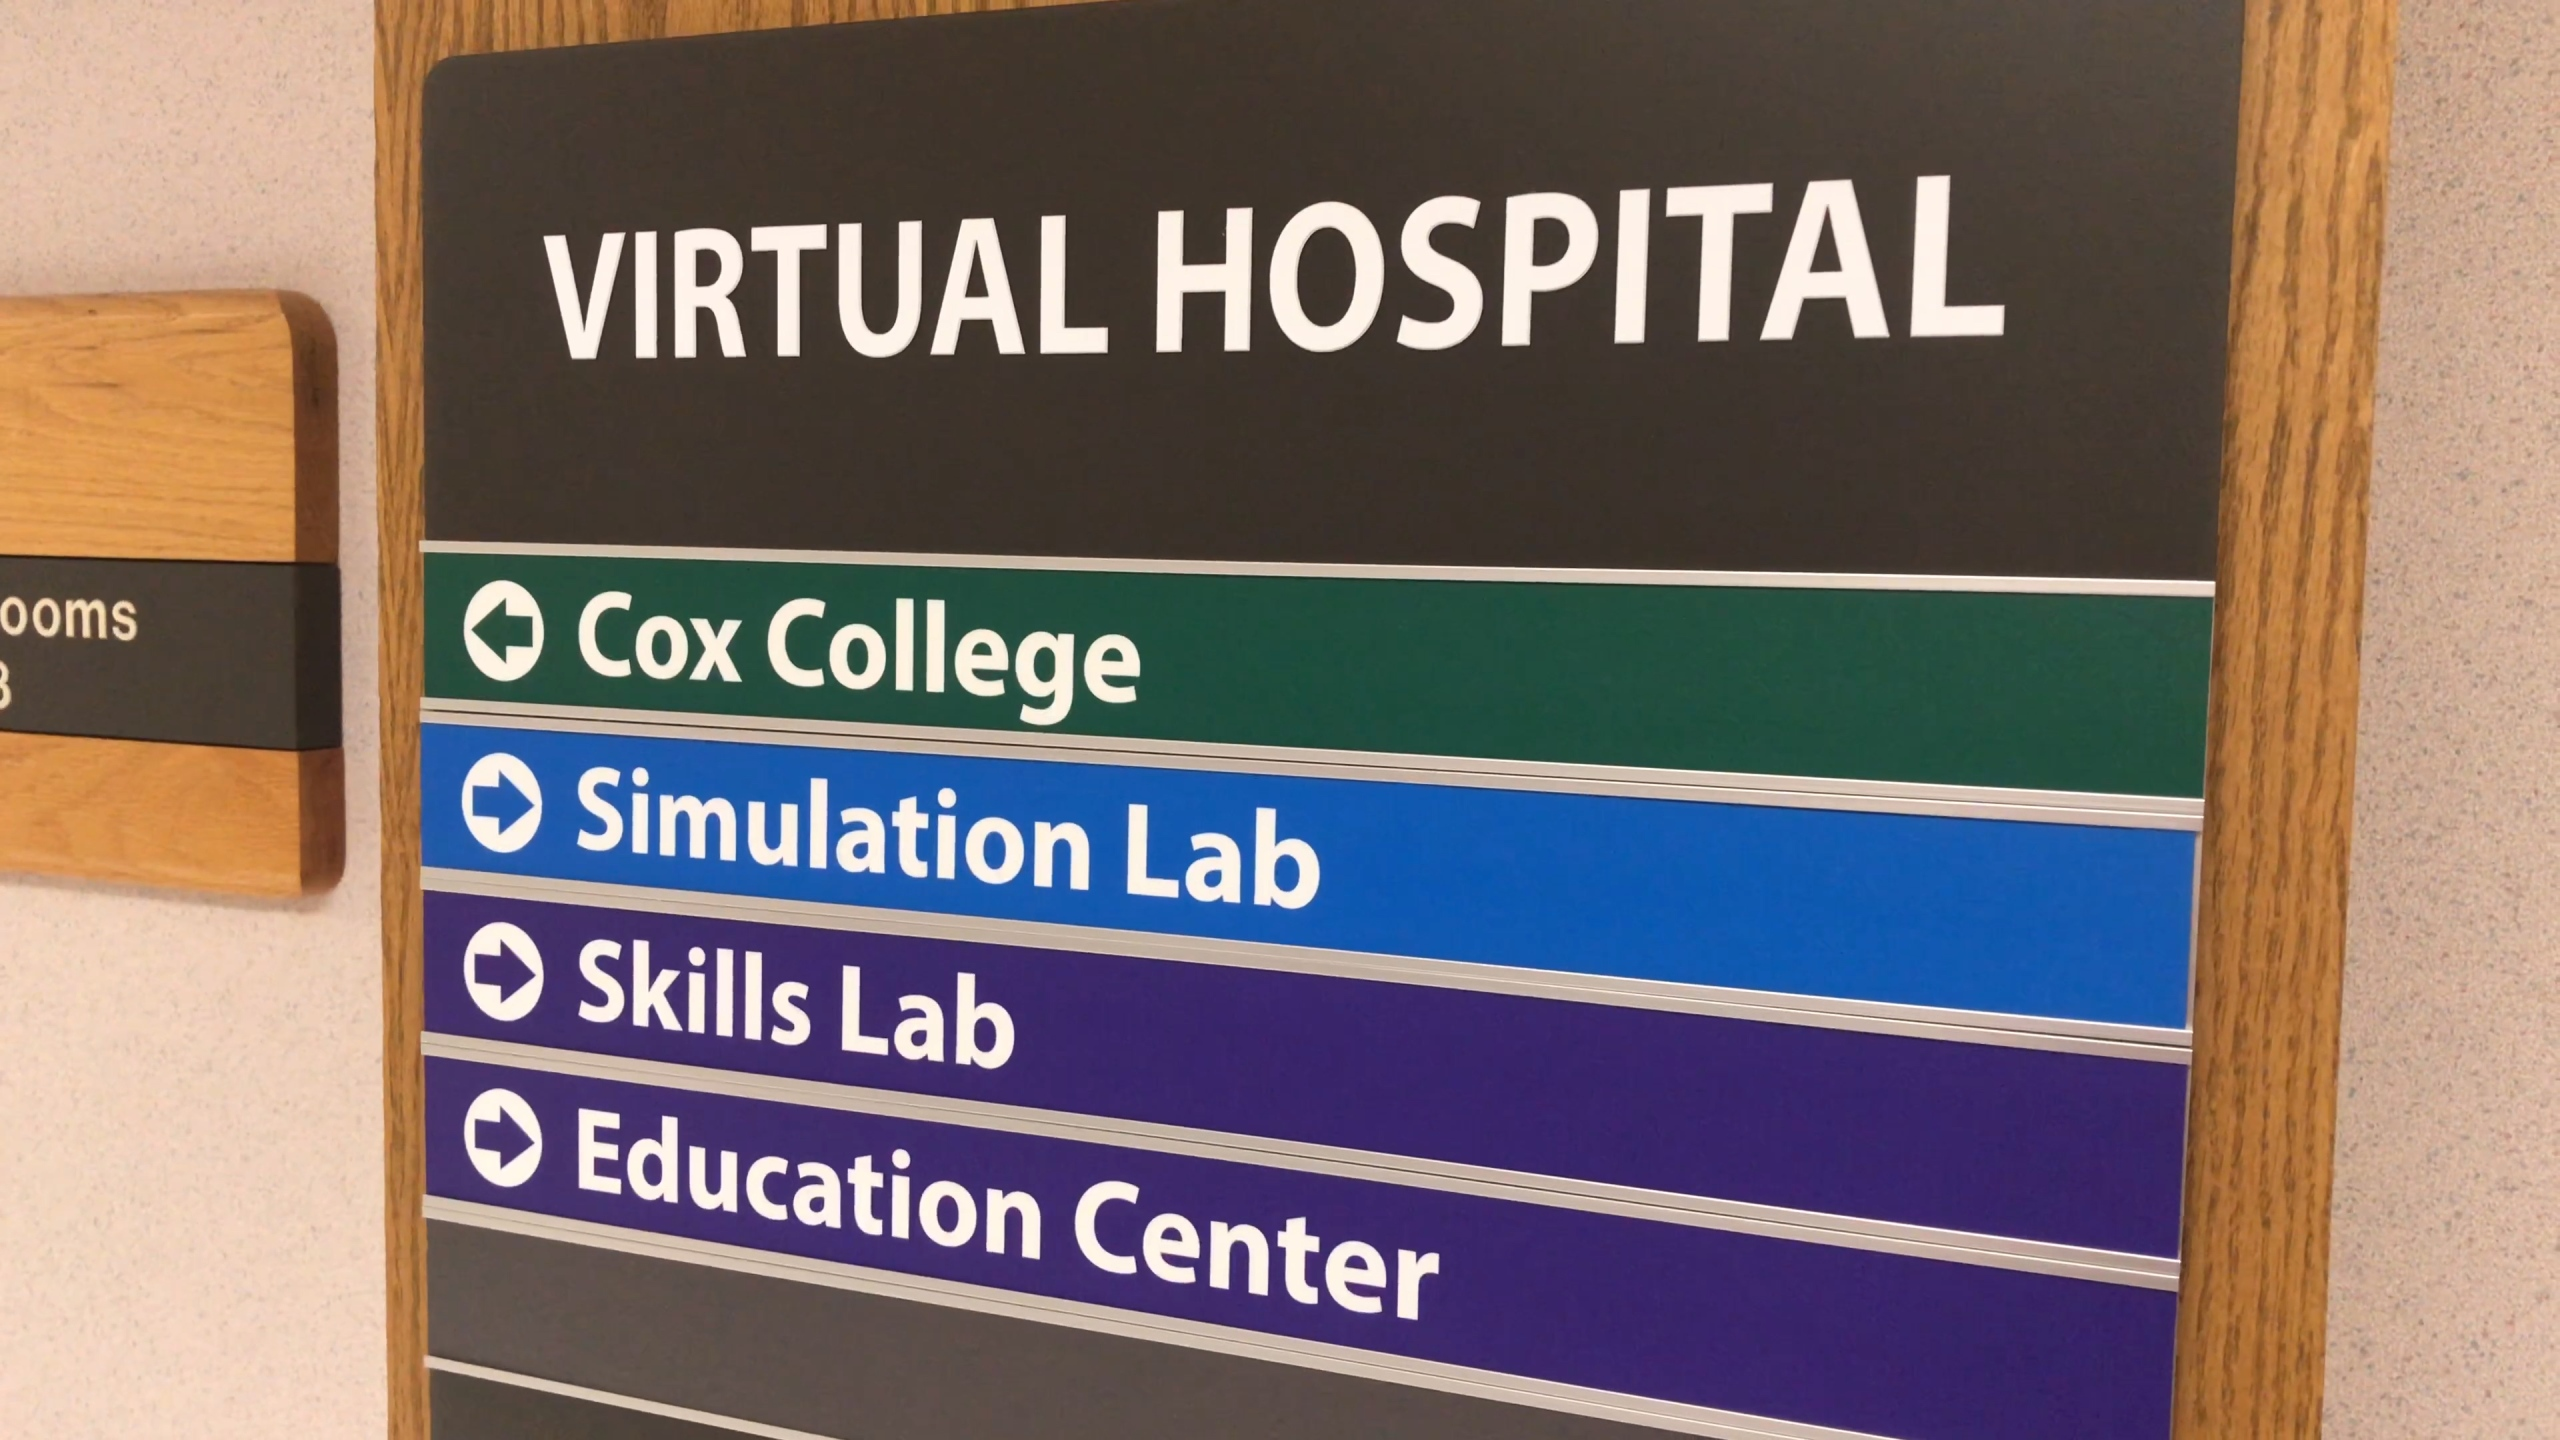 Cox College Occupational Therapy Virtual Hospital